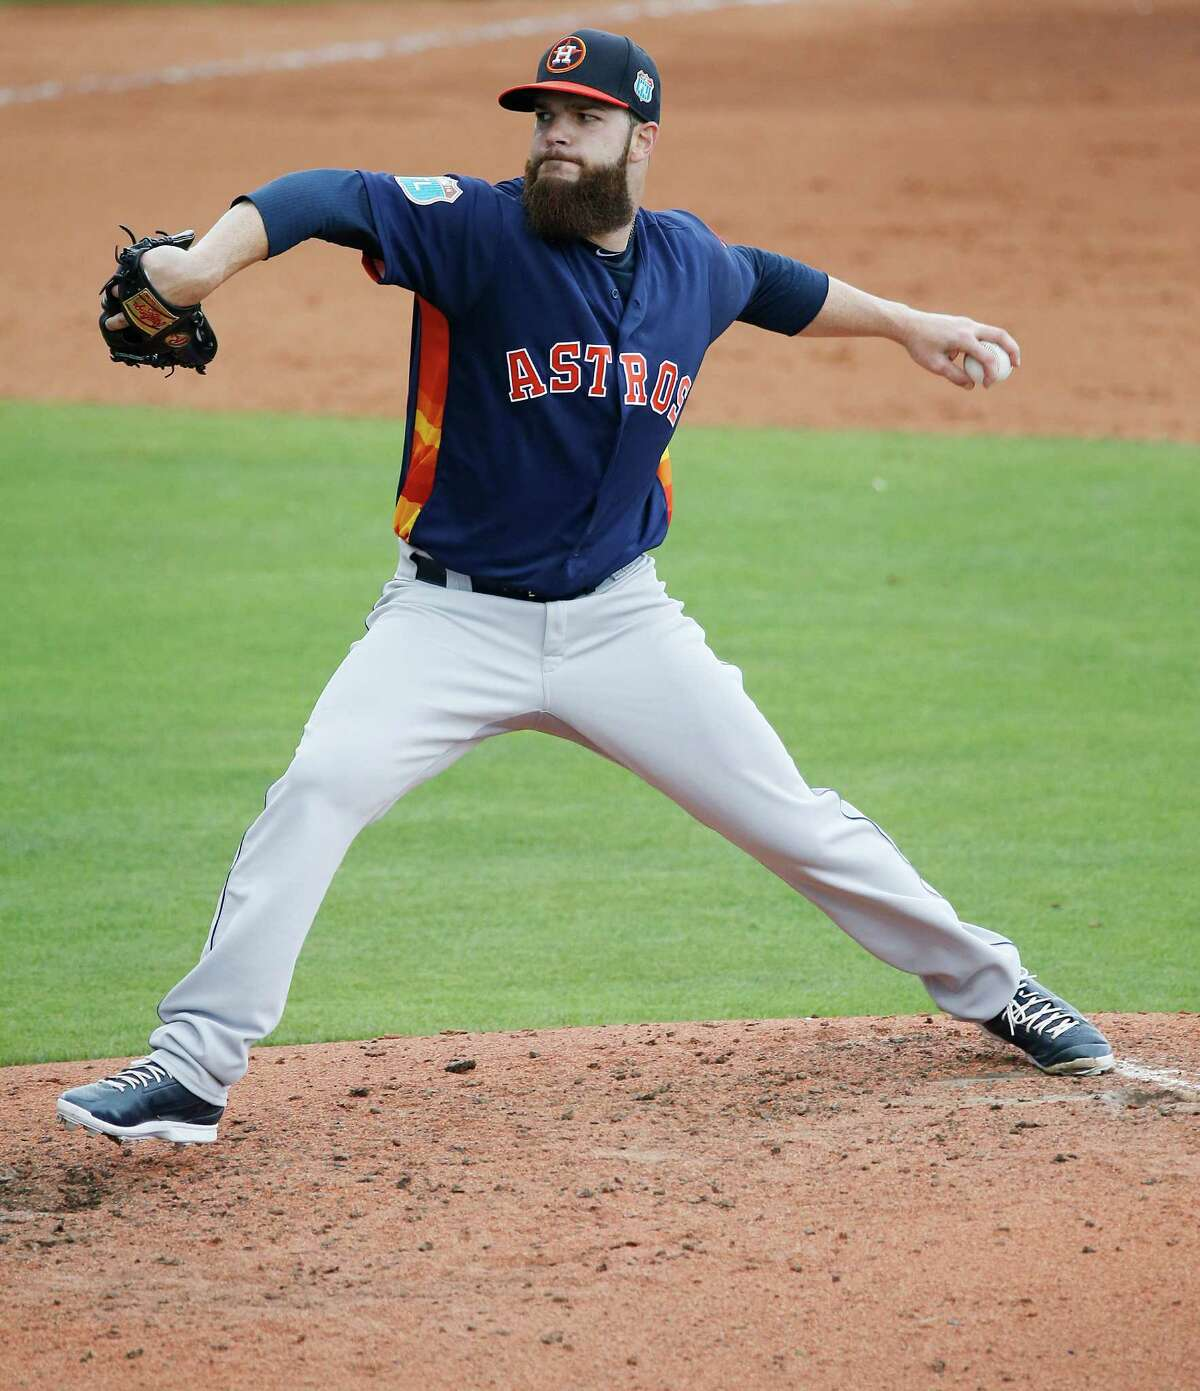 Houston Astros' starting pitcher Dallas Keuchel delivers a ball during the first inning of an exhibition spring training baseball game against the New York Mets, Thursday, March 24, 2016, in Port St. Lucie, Fla.